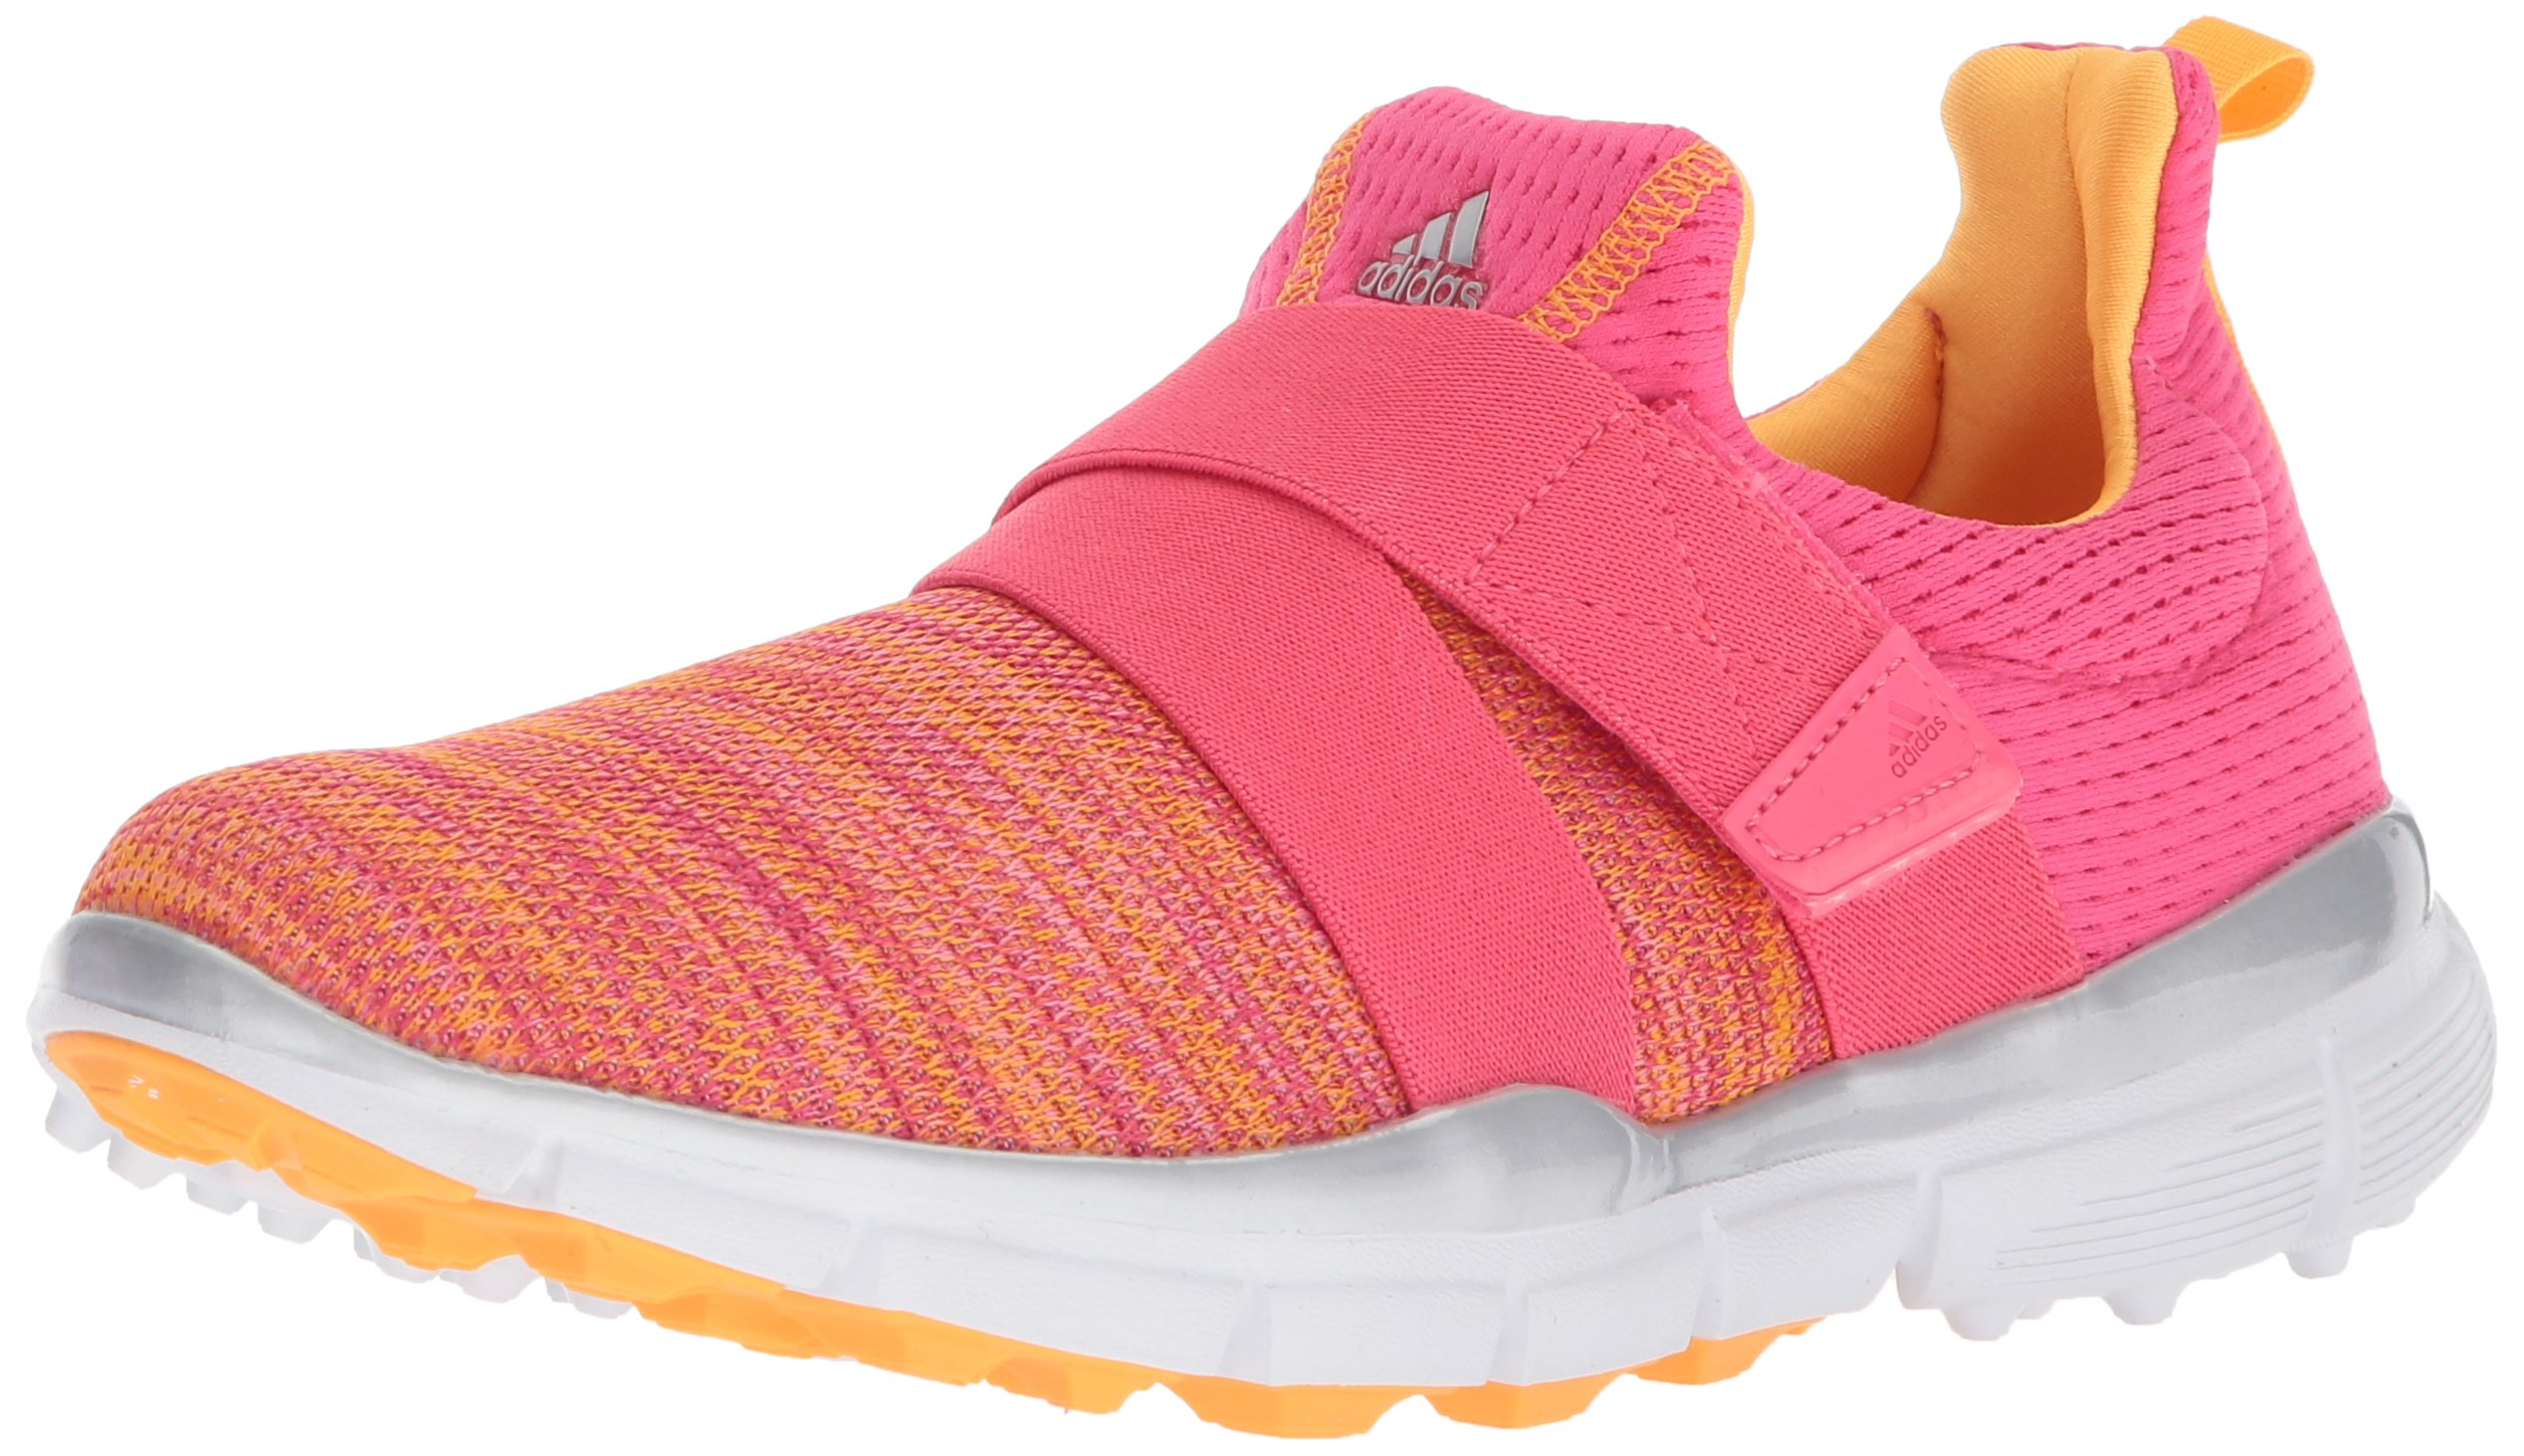 adidas Women's Climacool Knit Golf Shoe, Real Pink/Real Coral/Real Gold, 5 M US